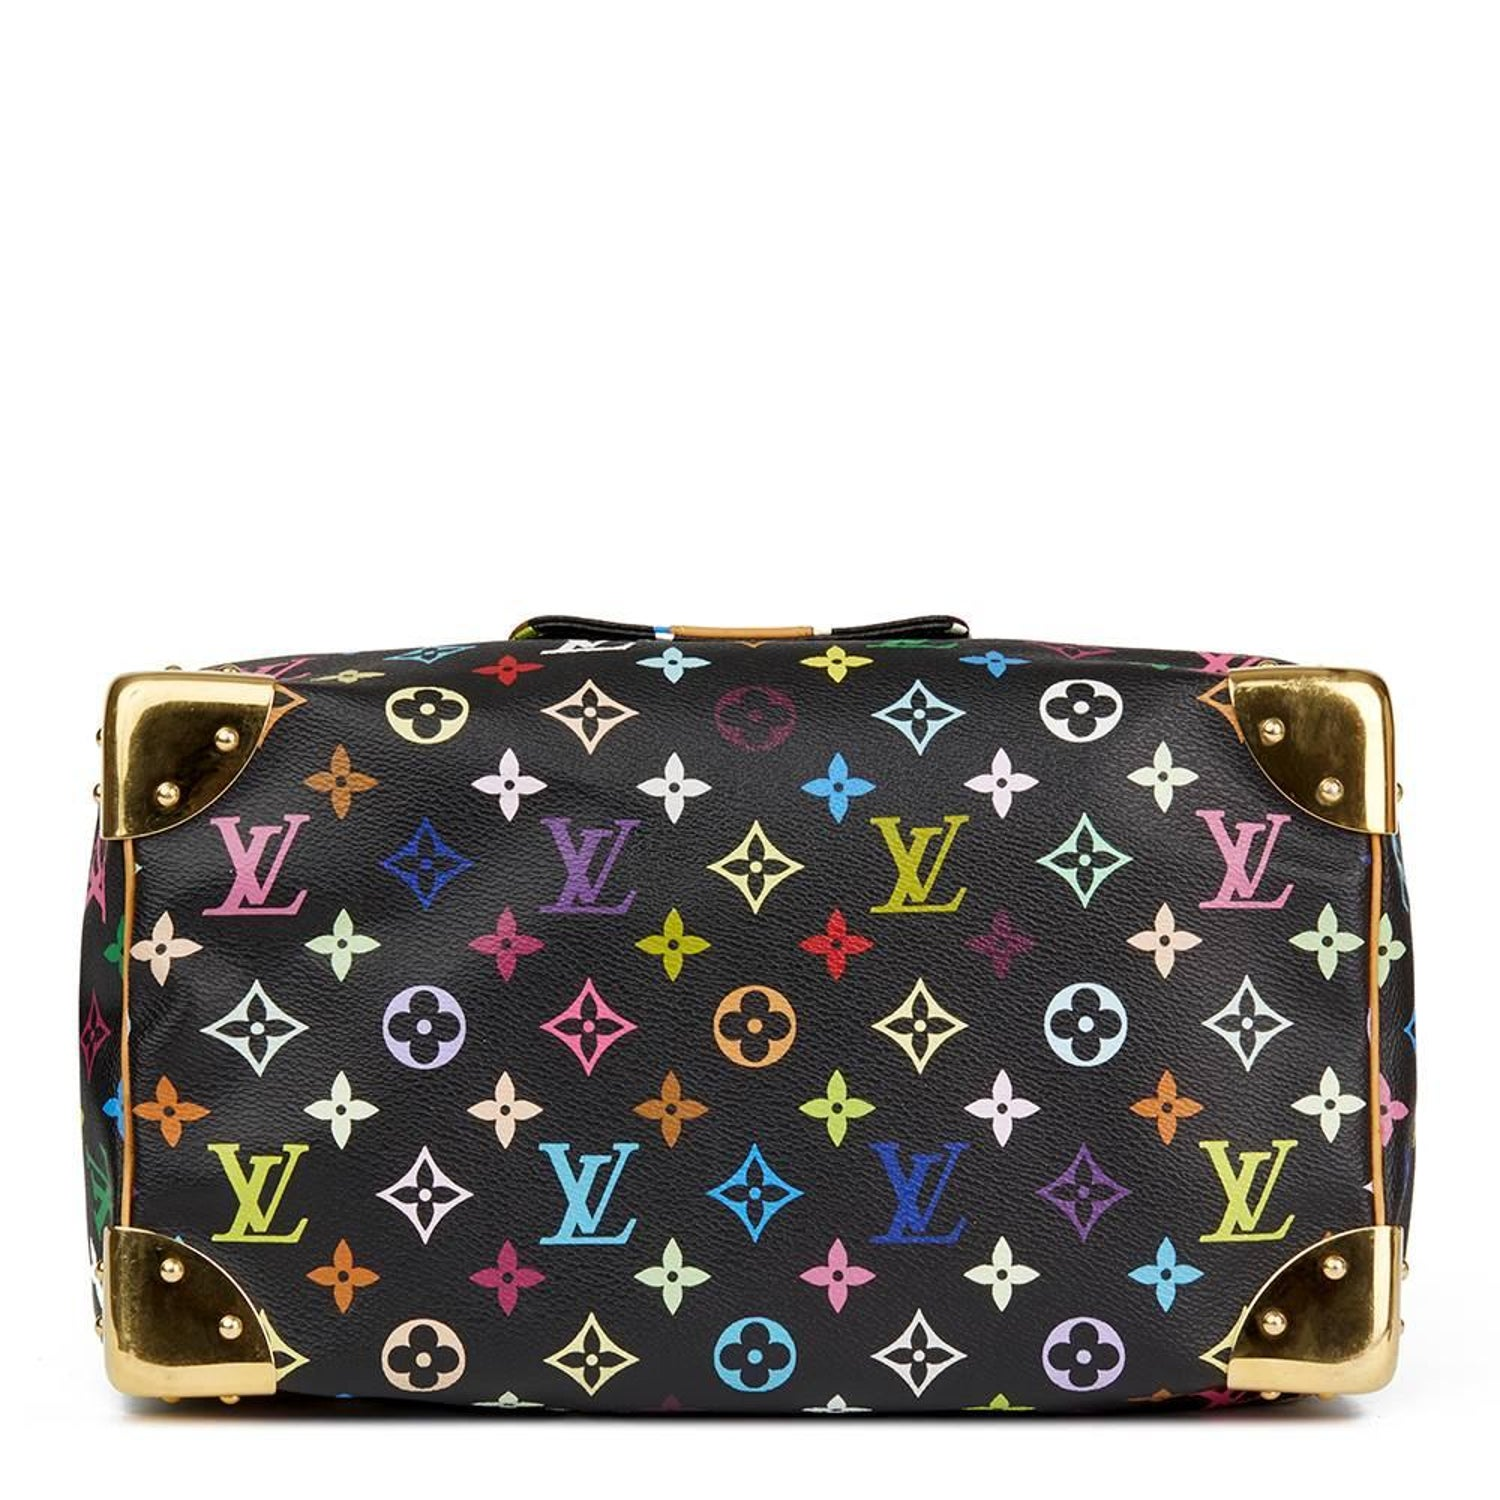 d8adf8acdd8 2005 Louis Vuitton Black Multicolour Monogram Coated Canvas Speedy 30 at  1stdibs